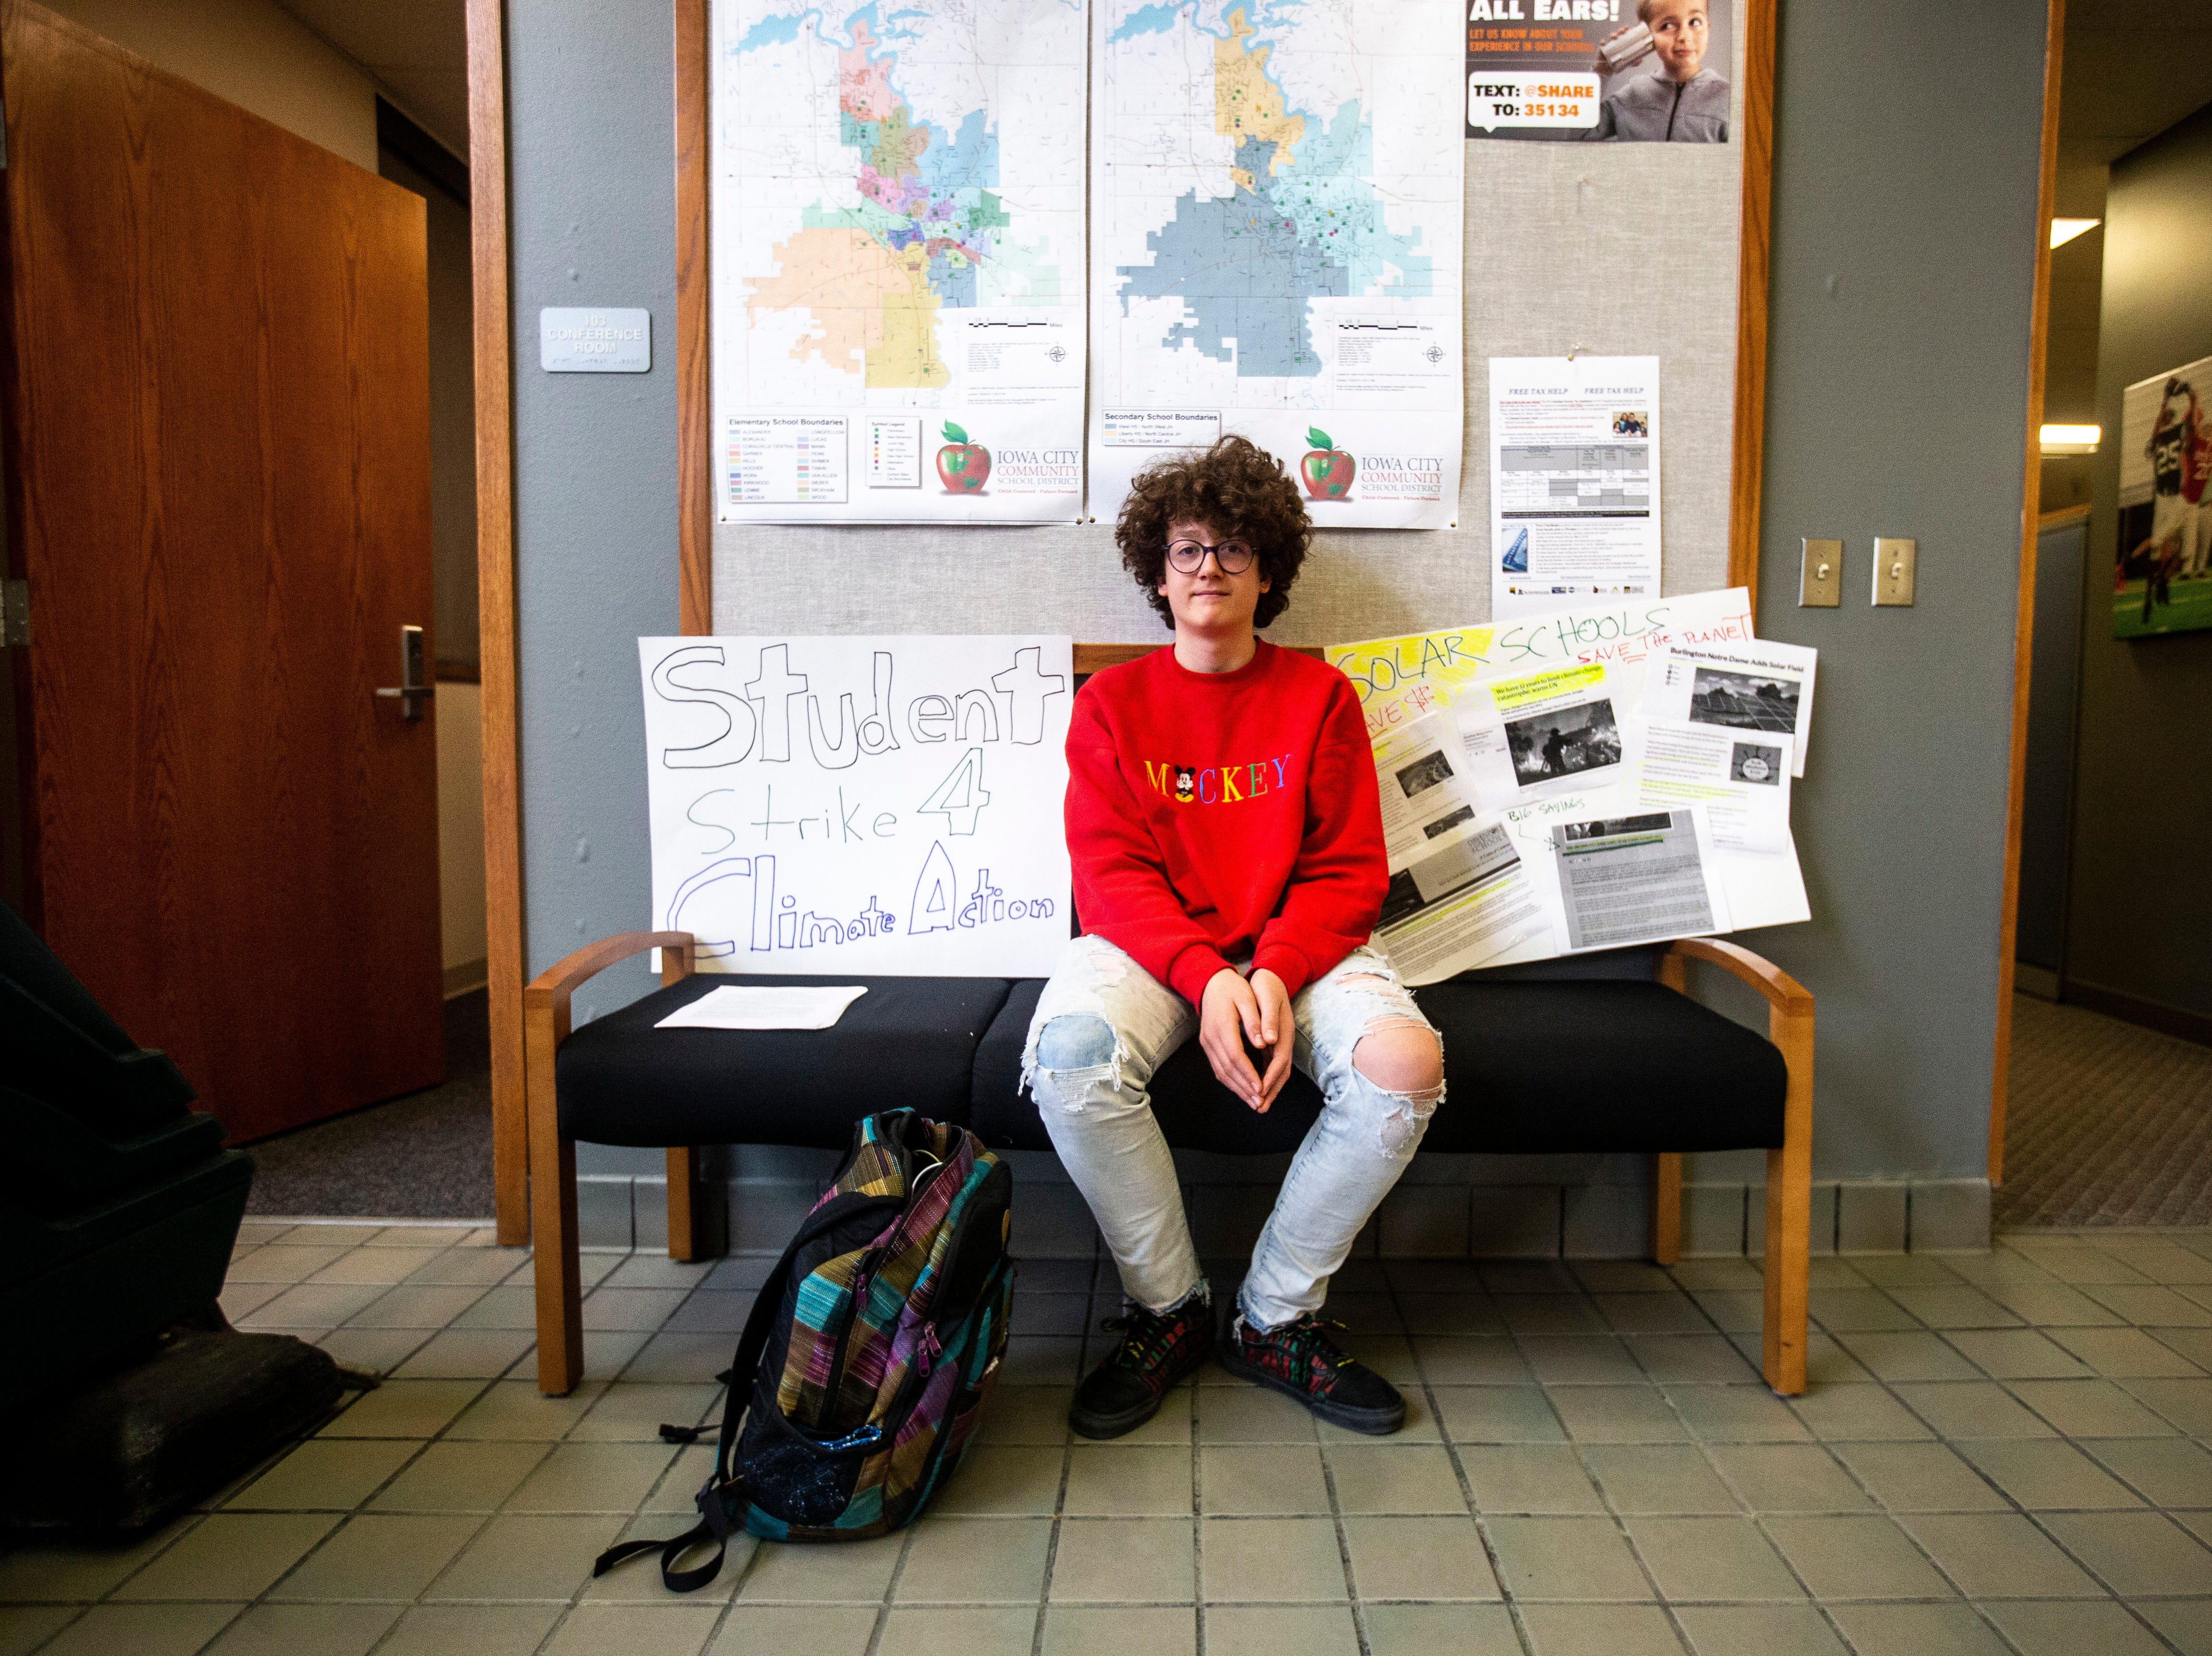 Massimo Paciotto-Biggers, 13, sits for a photo during a weekly walkout demanding solar panels on school buildings, Friday, April 5, 2019, outside the Iowa City Community School District offices along North Dodge Street in Iowa City, Iowa. Paciotto-Biggers sat by himself that afternoon.